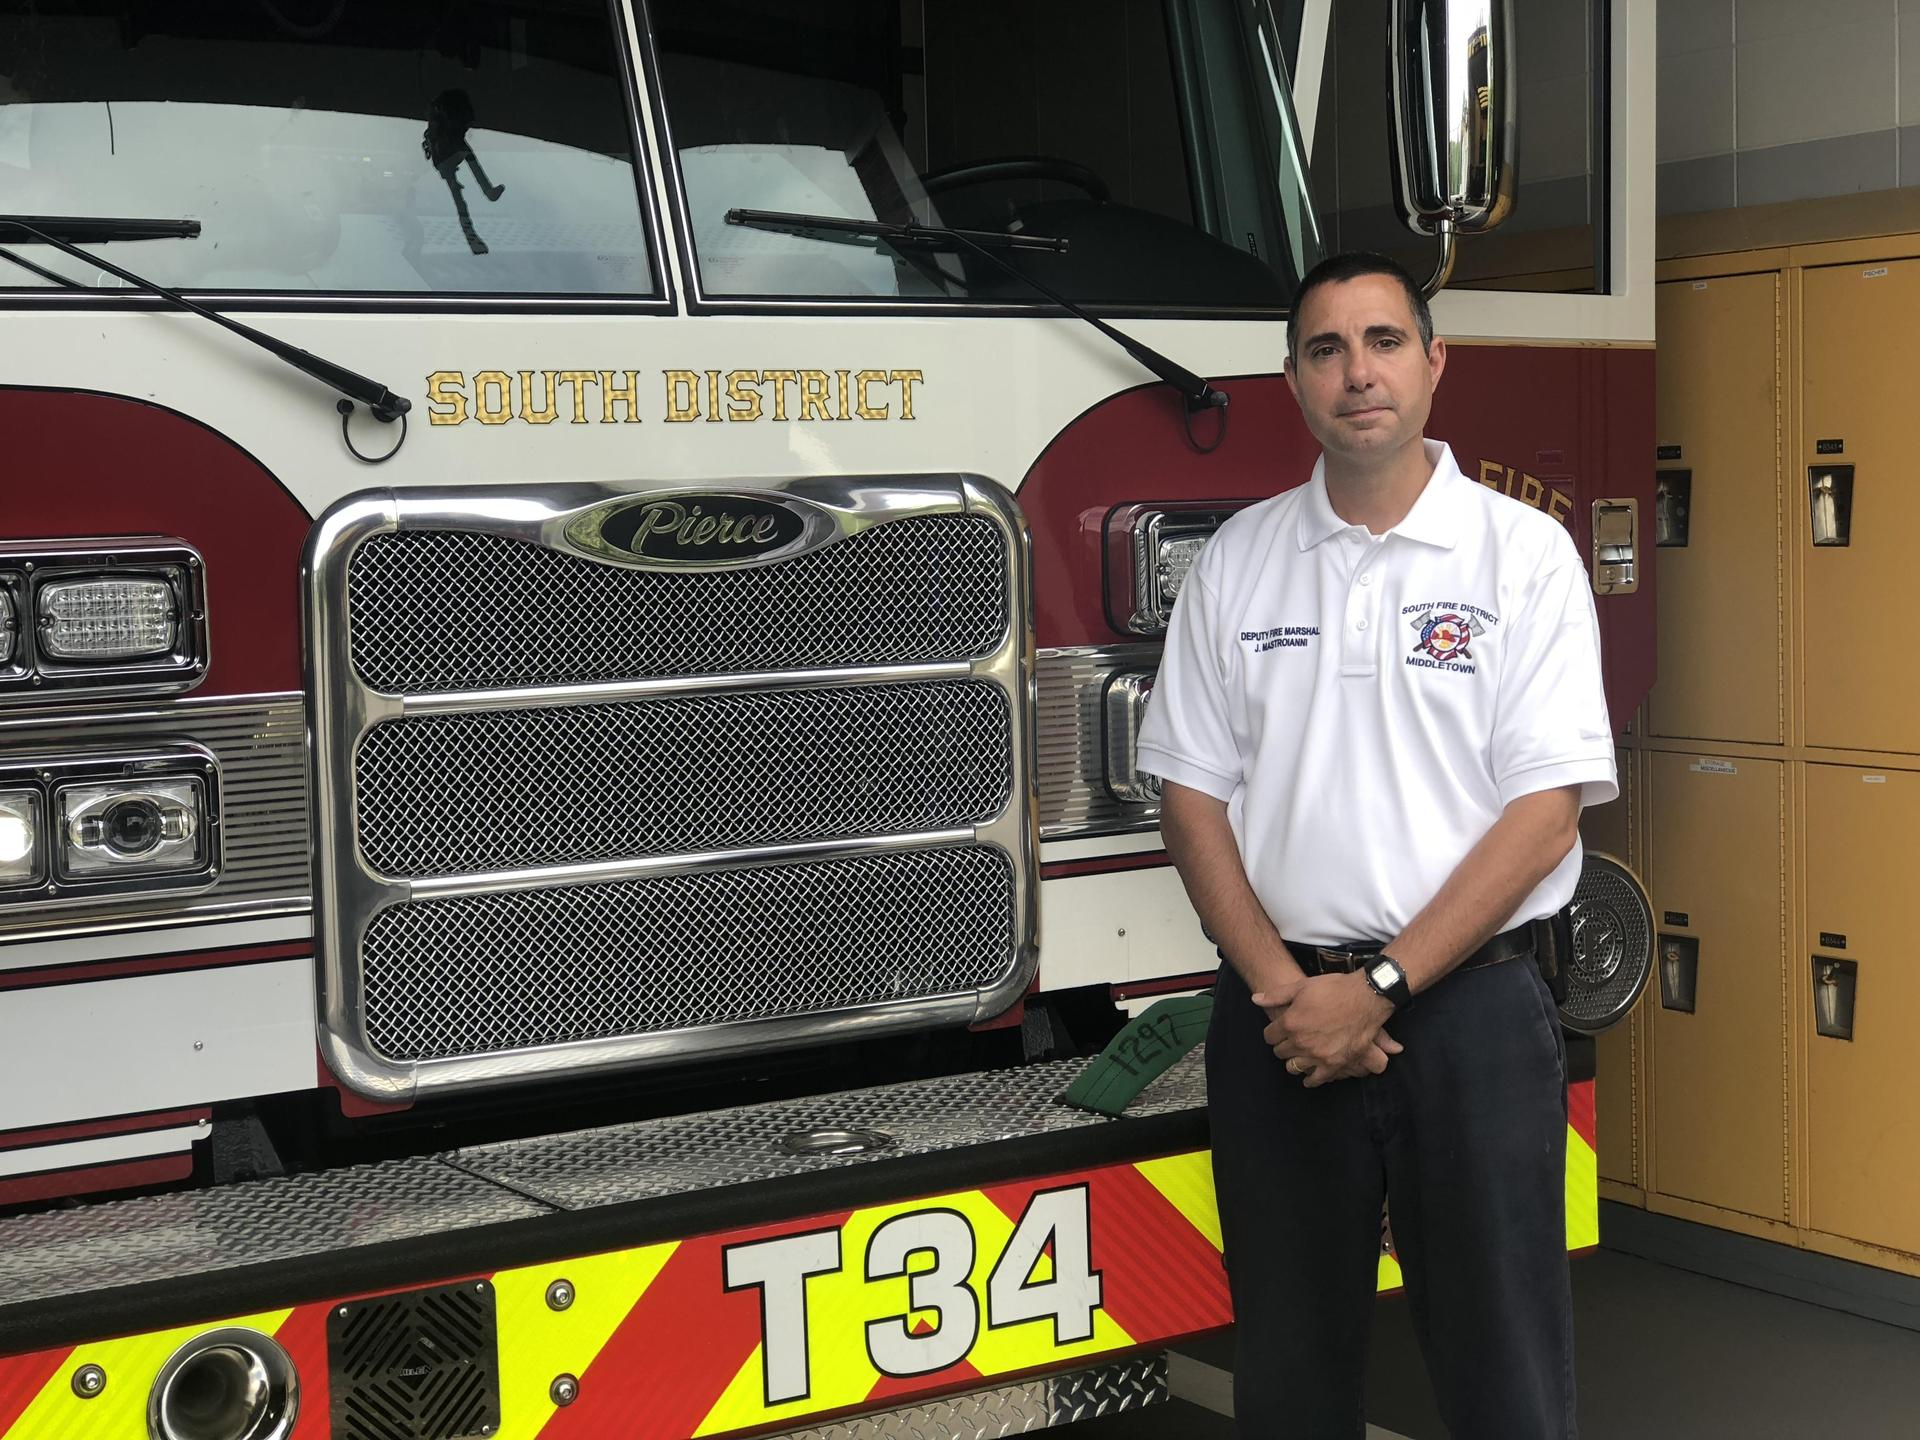 James Mastroianni '90 at the South District Fire Station